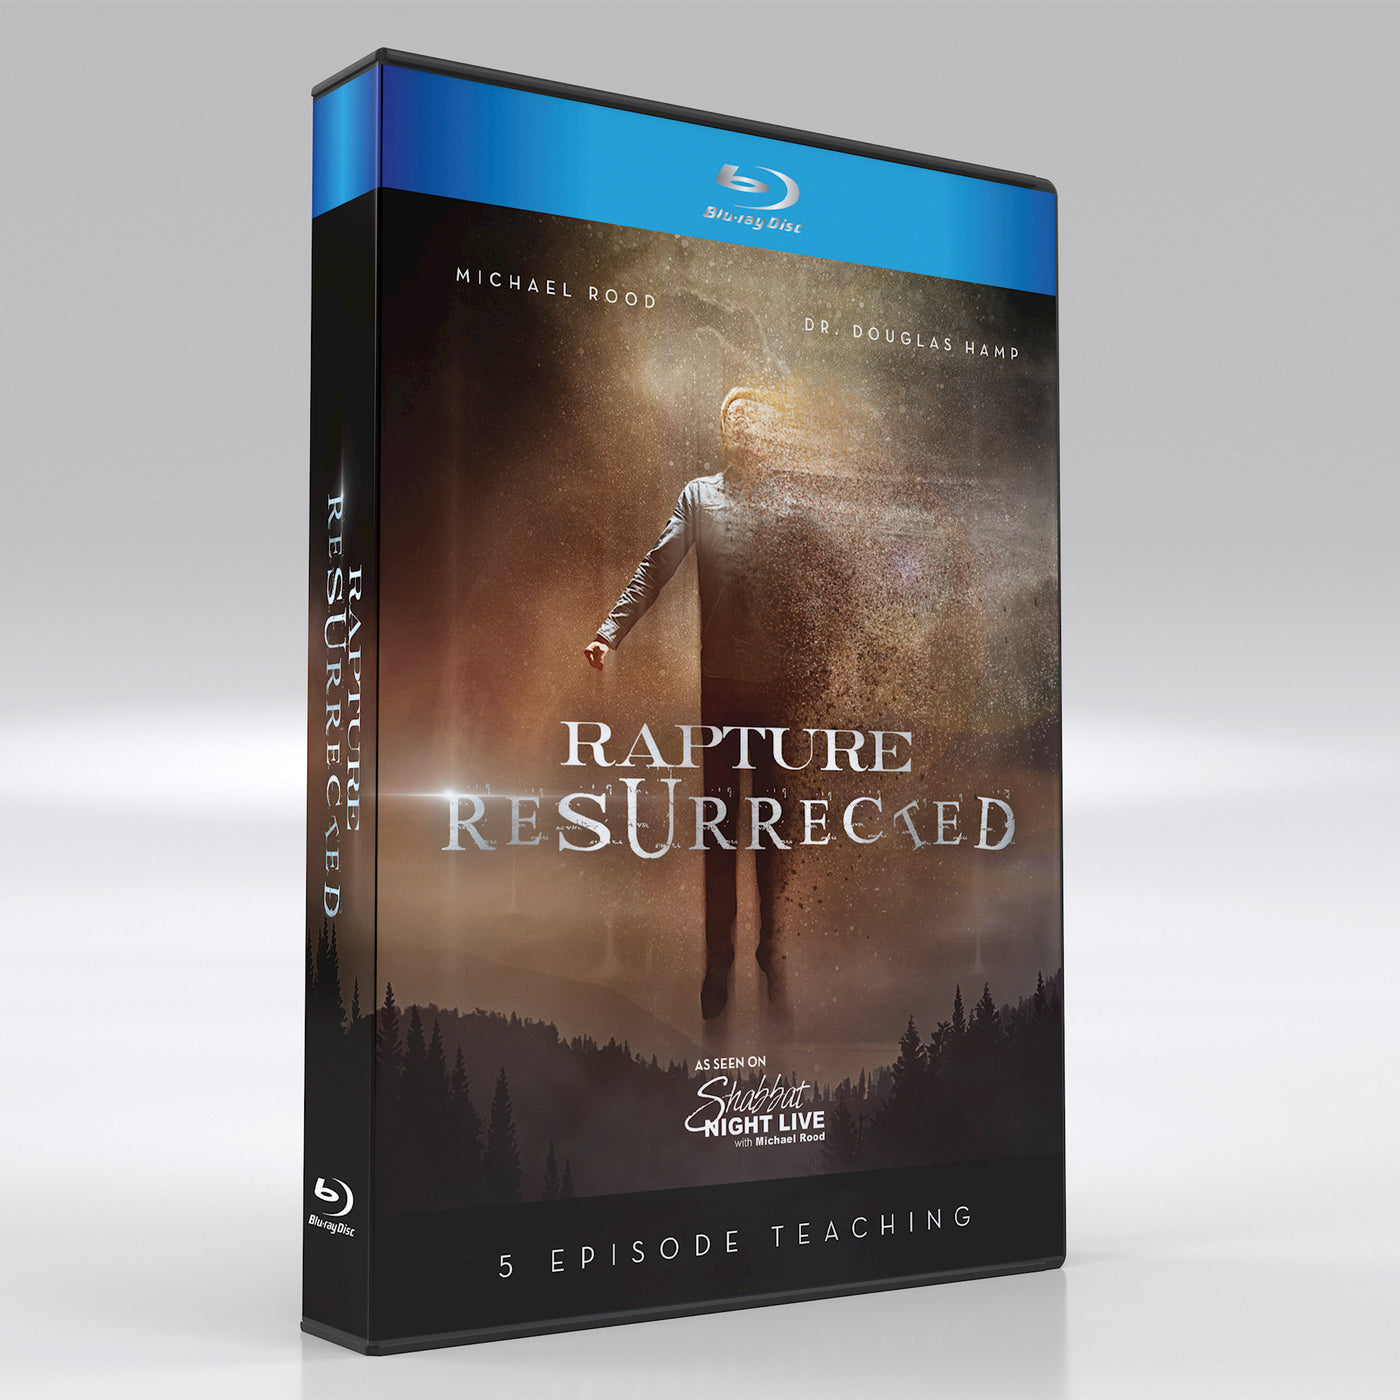 Rapture Resurrected